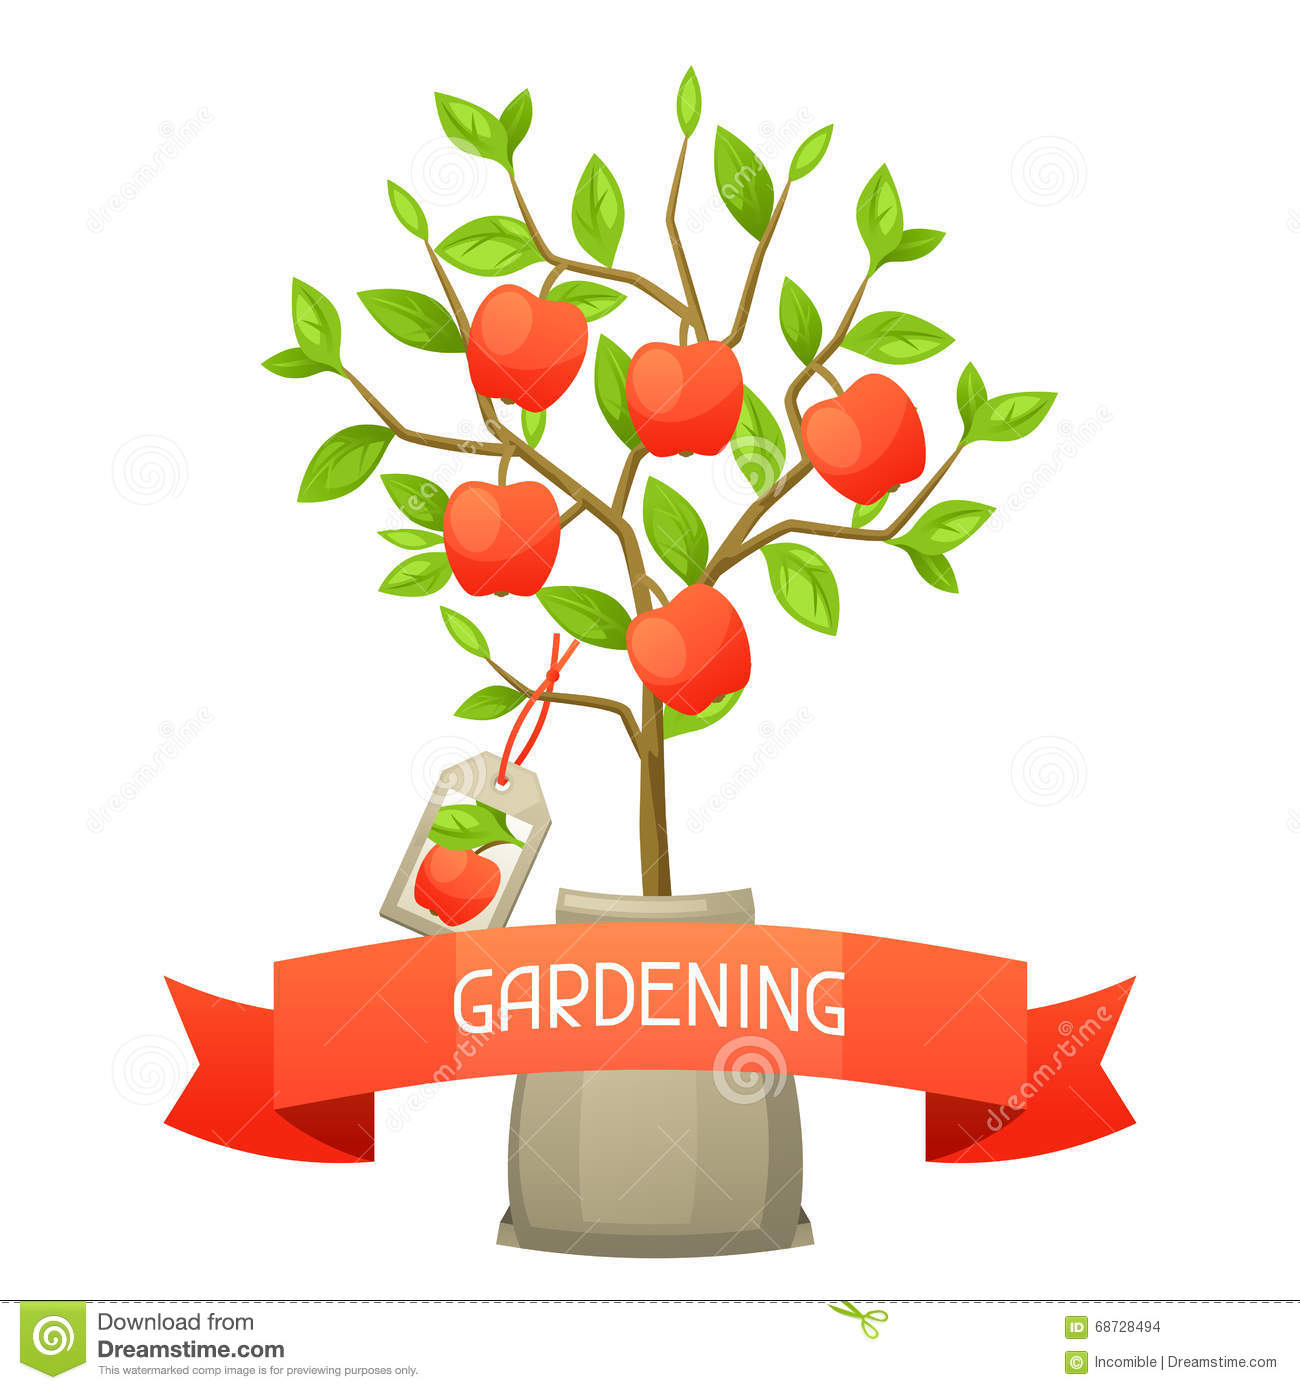 seedling of apple tree tag illustration for agricultural illustration for agricultural booklets flyers garden stock images